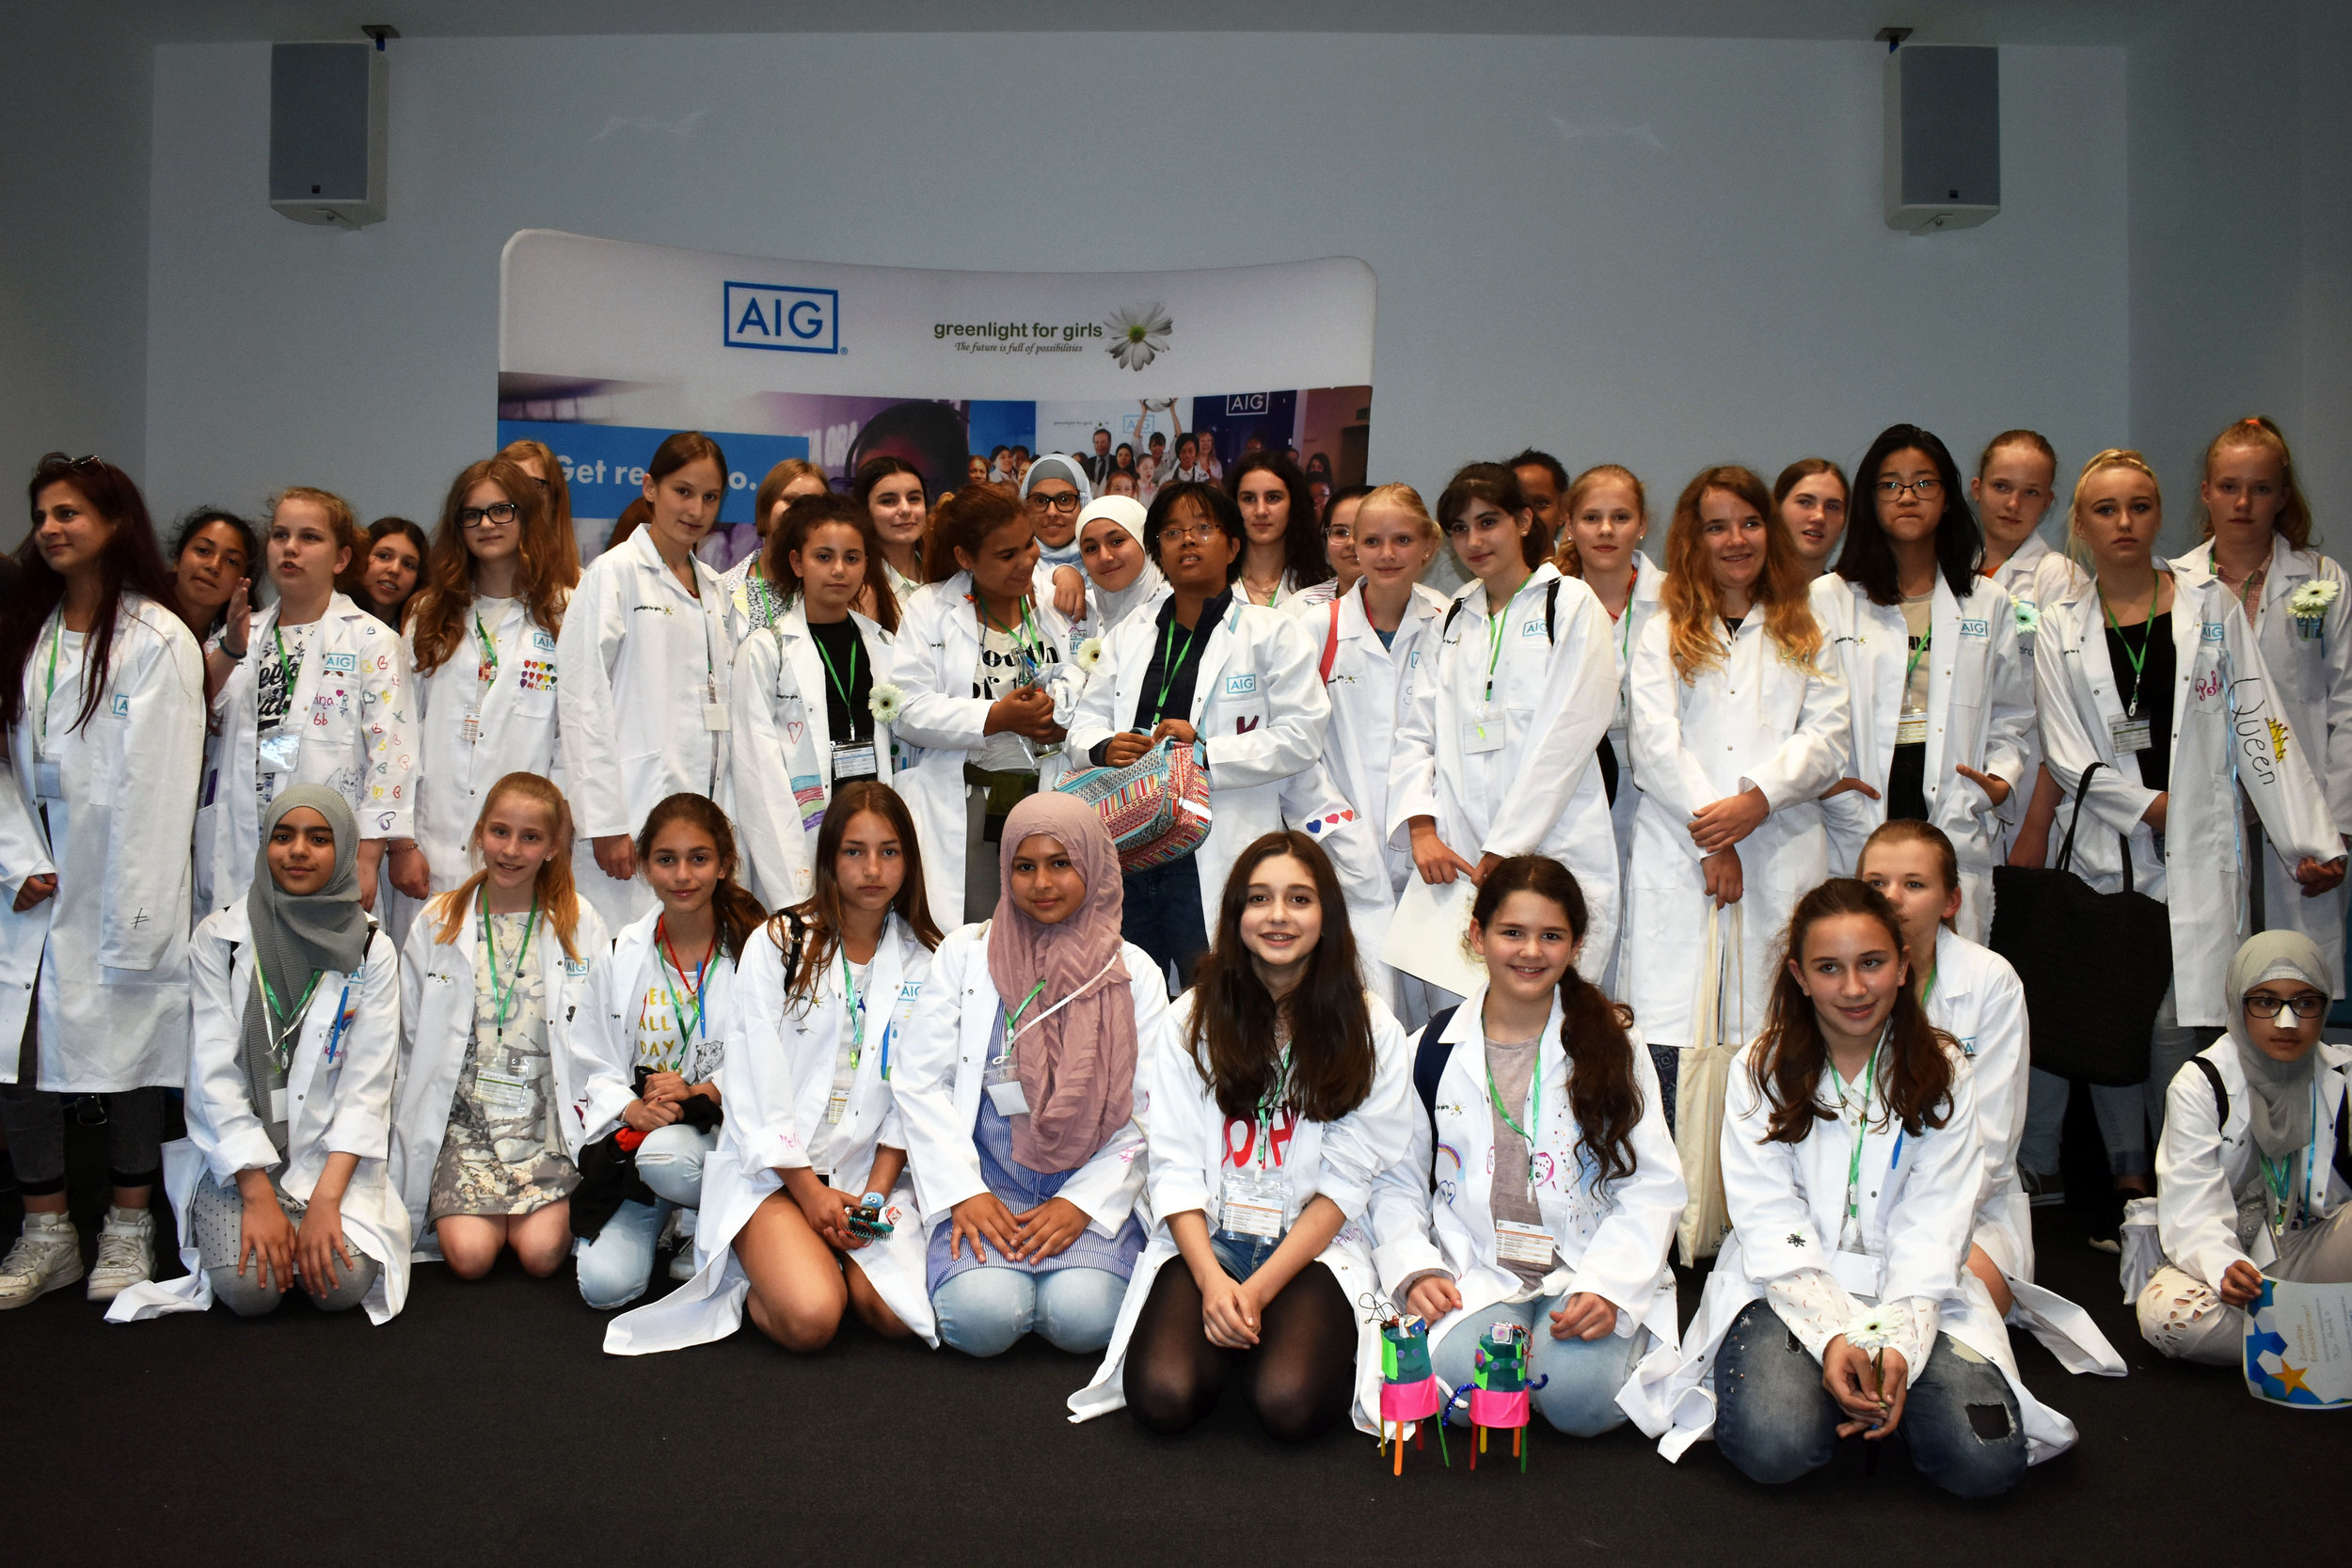 g4g@work Day at AIG in Frankfurt    - June 2018   On June 6, 2018, g4g and AIG partnered up to launch in the amazing Frankfurt, Germany! 50 girls enjoyed innovative workshops and discovered what cyber-security REALLY means!